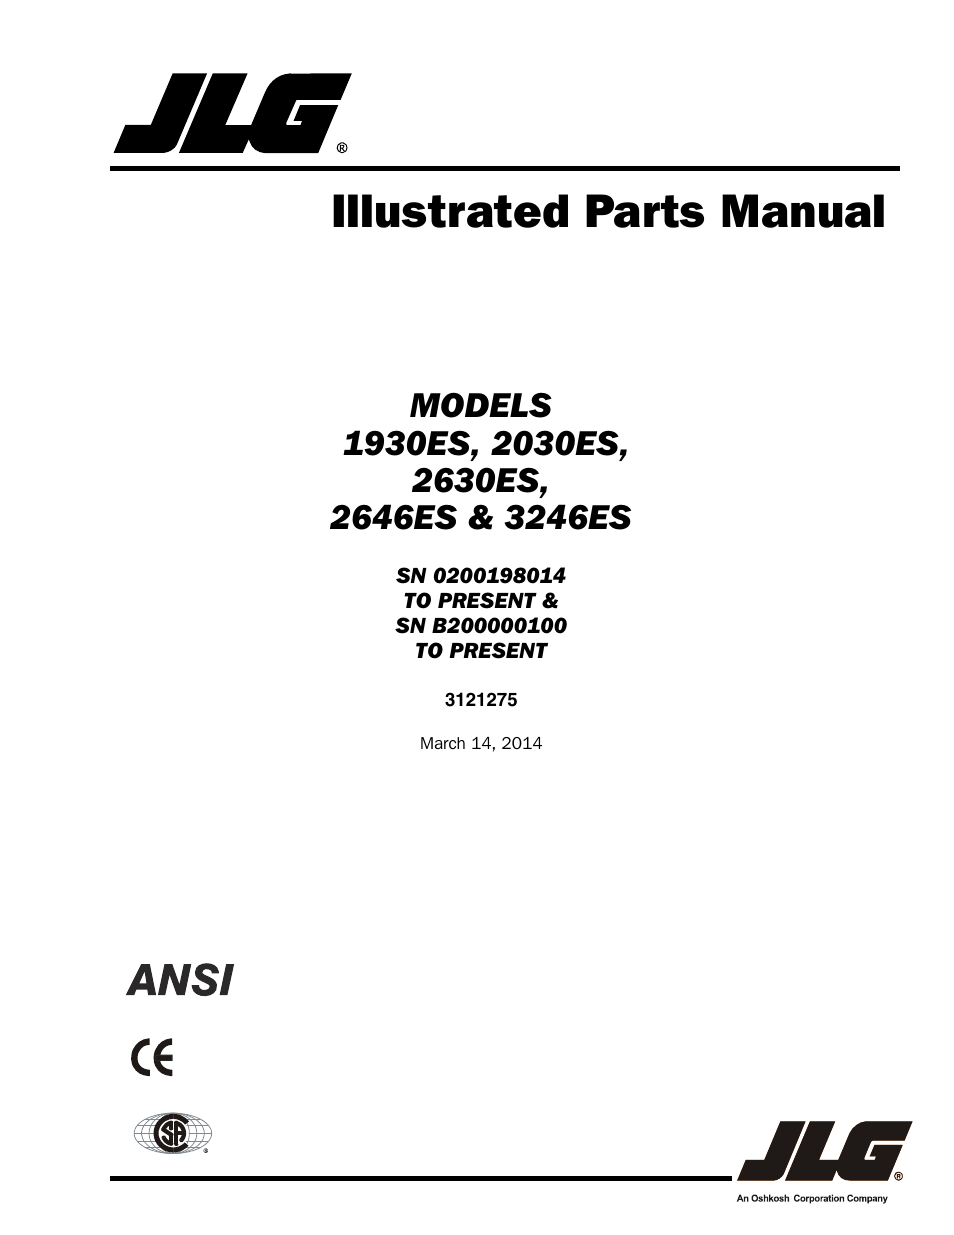 medium resolution of jlg 3246es parts manual user manual 186 pages also for 2646es parts manual 2046es parts manual 2030es parts manual 1930es parts manual